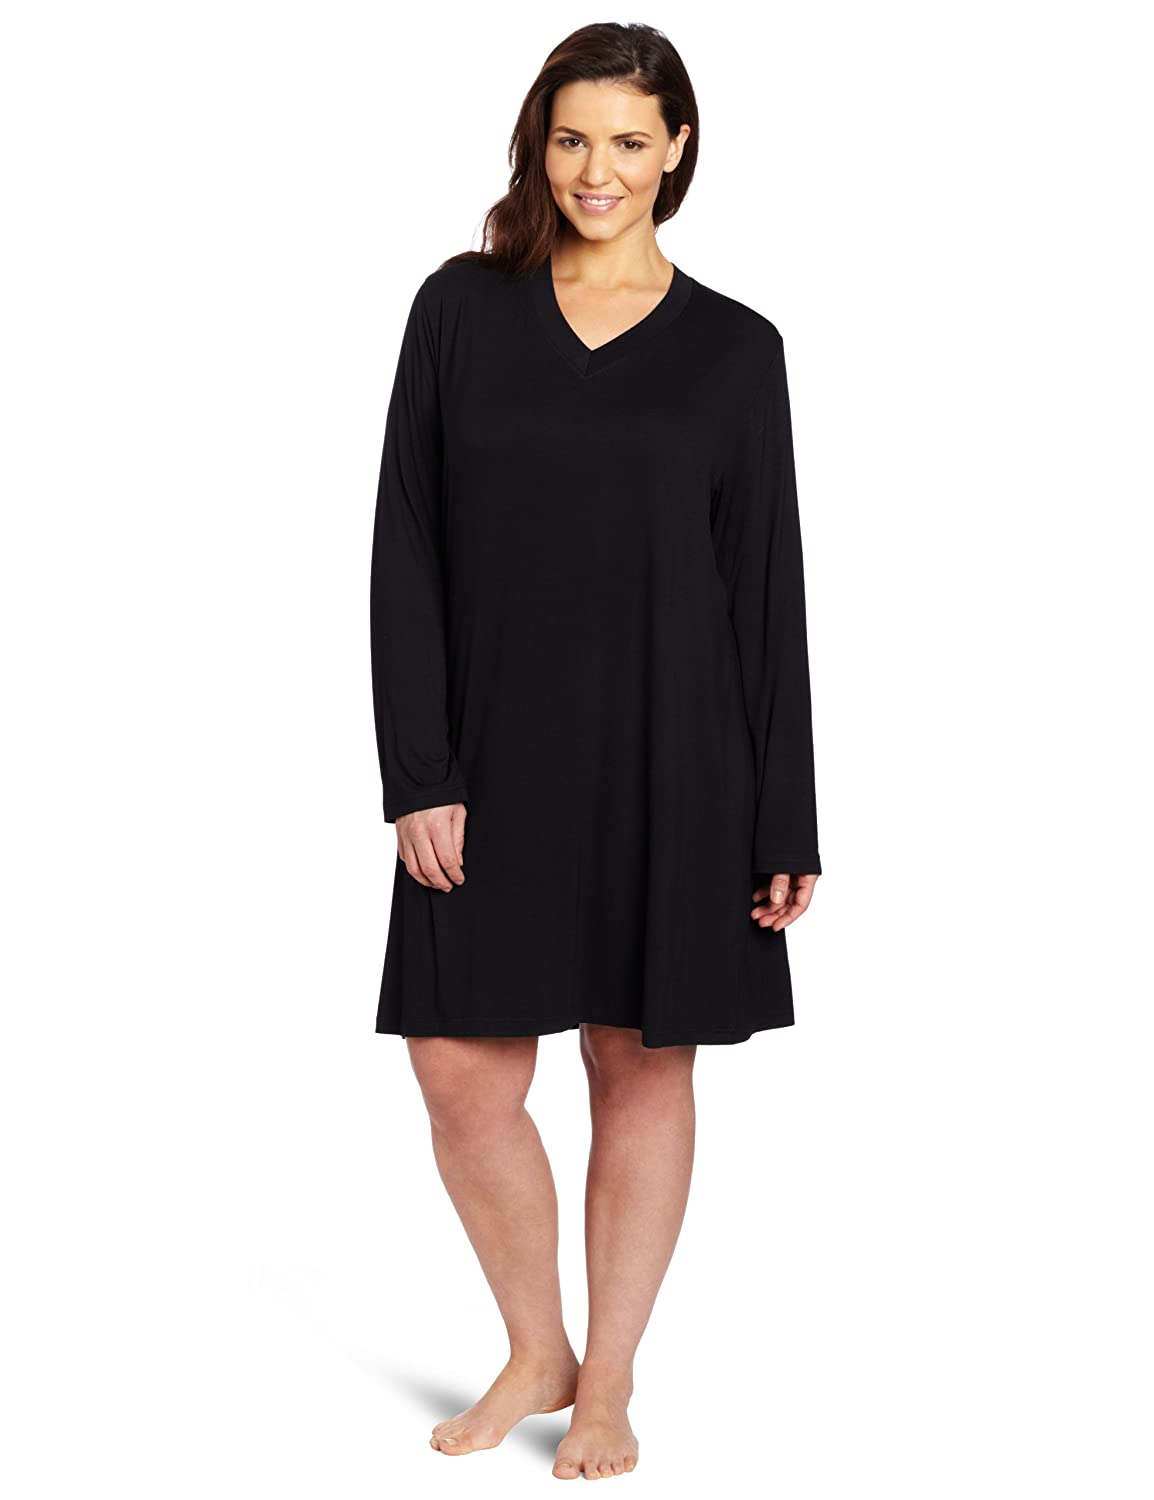 Casual Moments Women s Plus-Size Sleepshirt at Amazon Women s Clothing  store  Nightgowns 94423e361